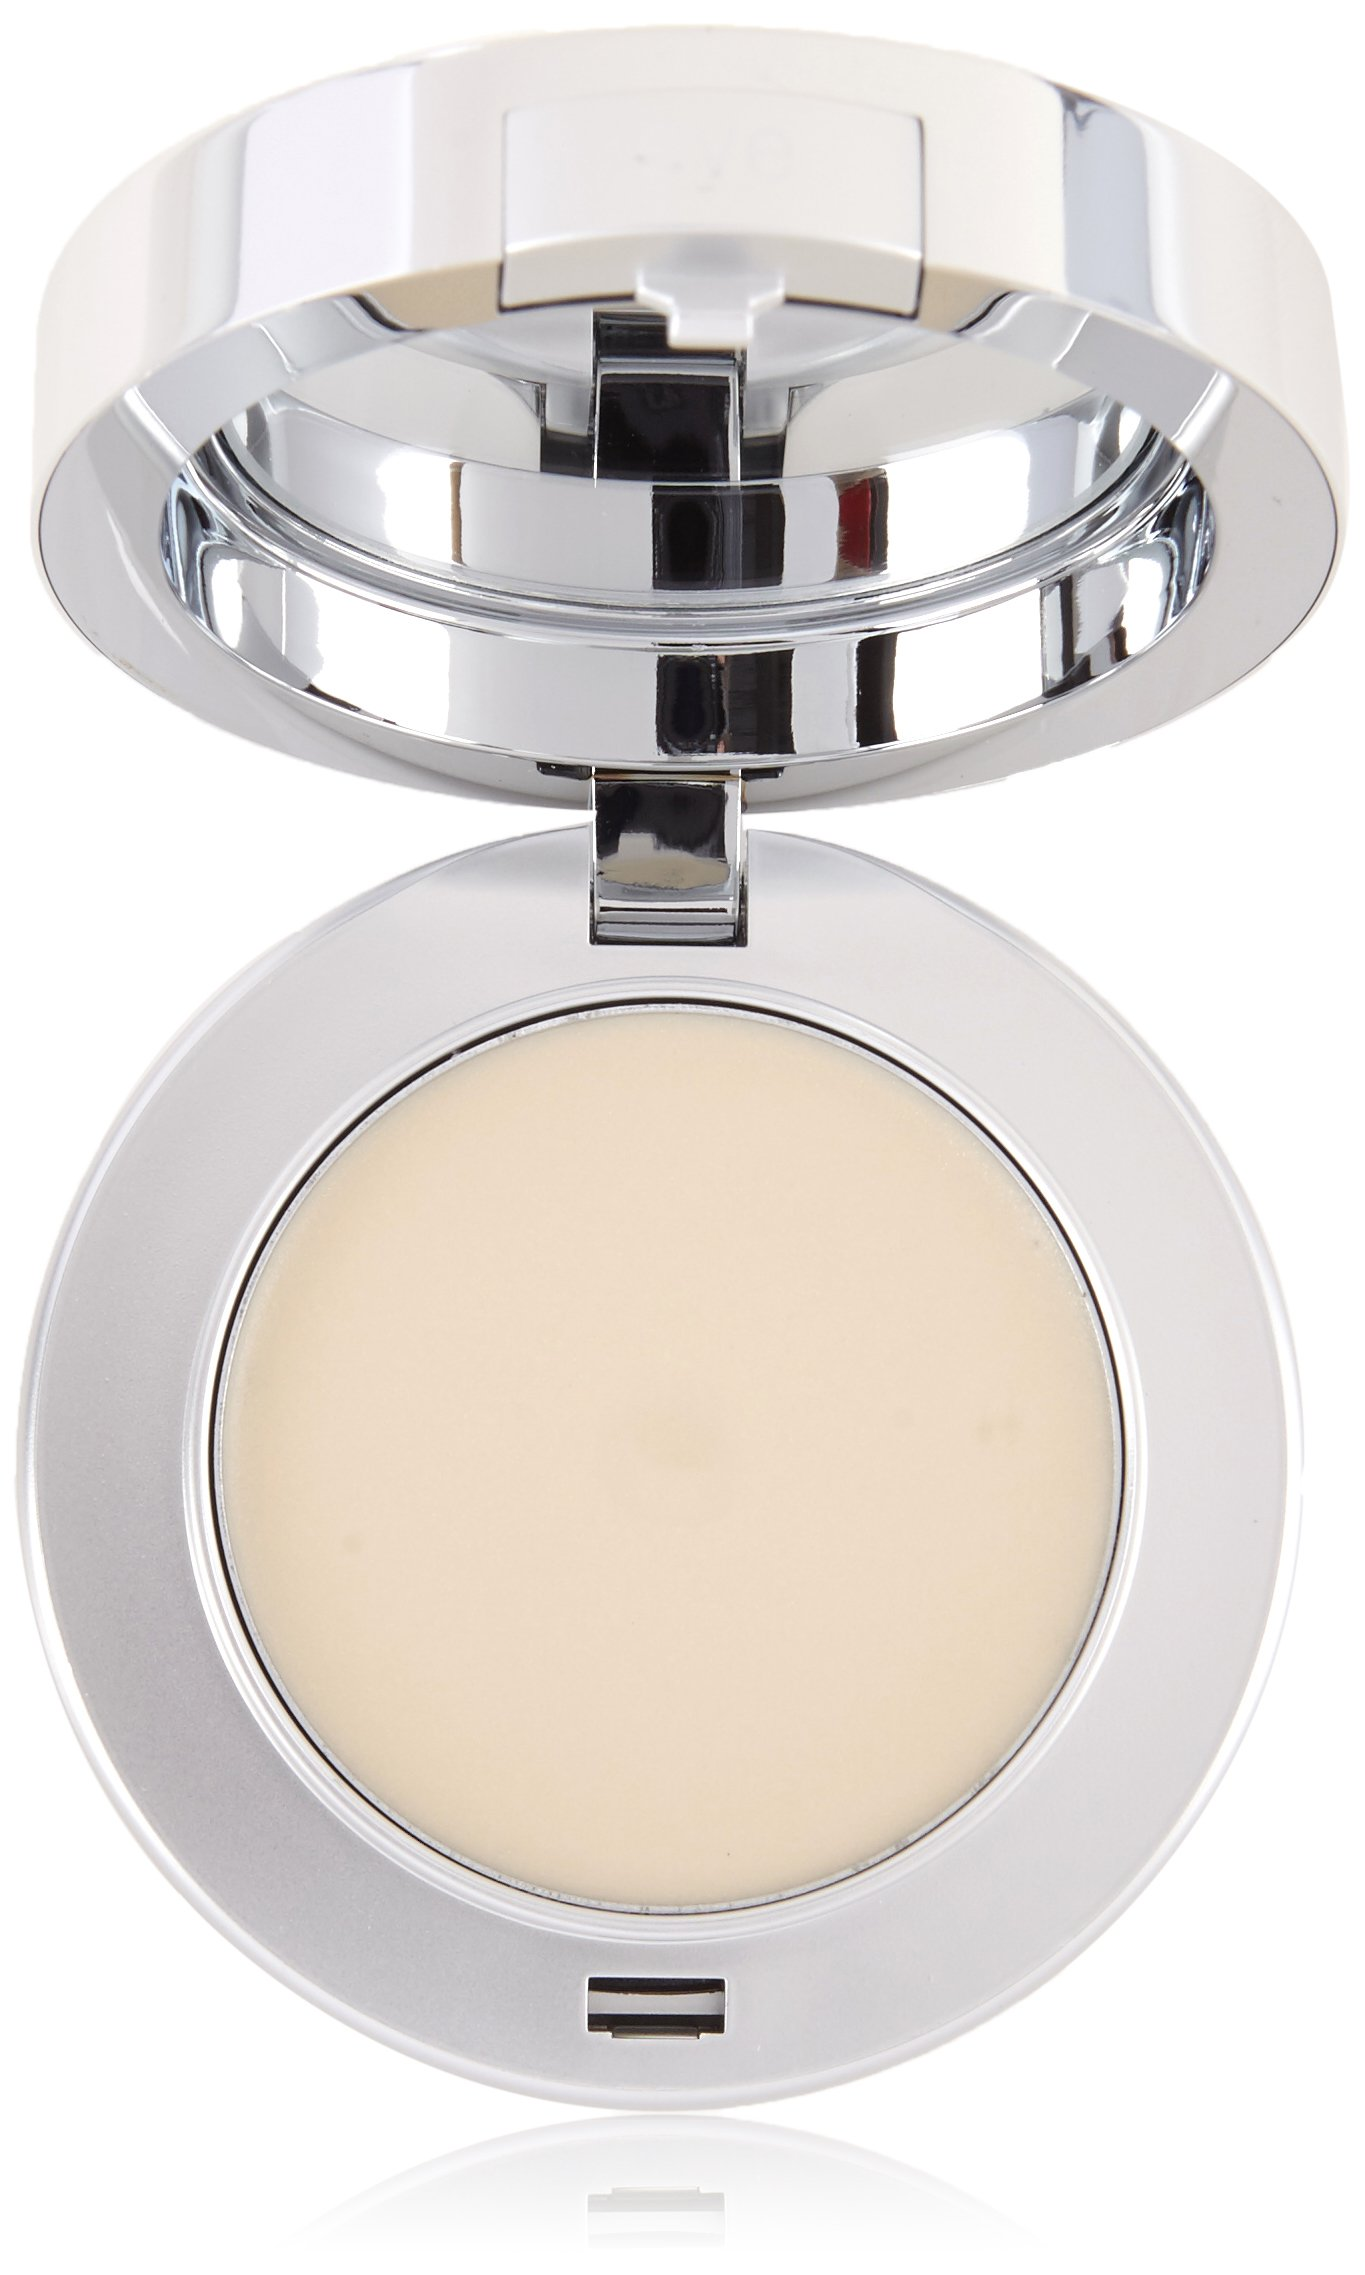 La Prairie Anti-Aging Eye/Lip Perfection-A Porter Cream for Unisex, 0.26 Ounce